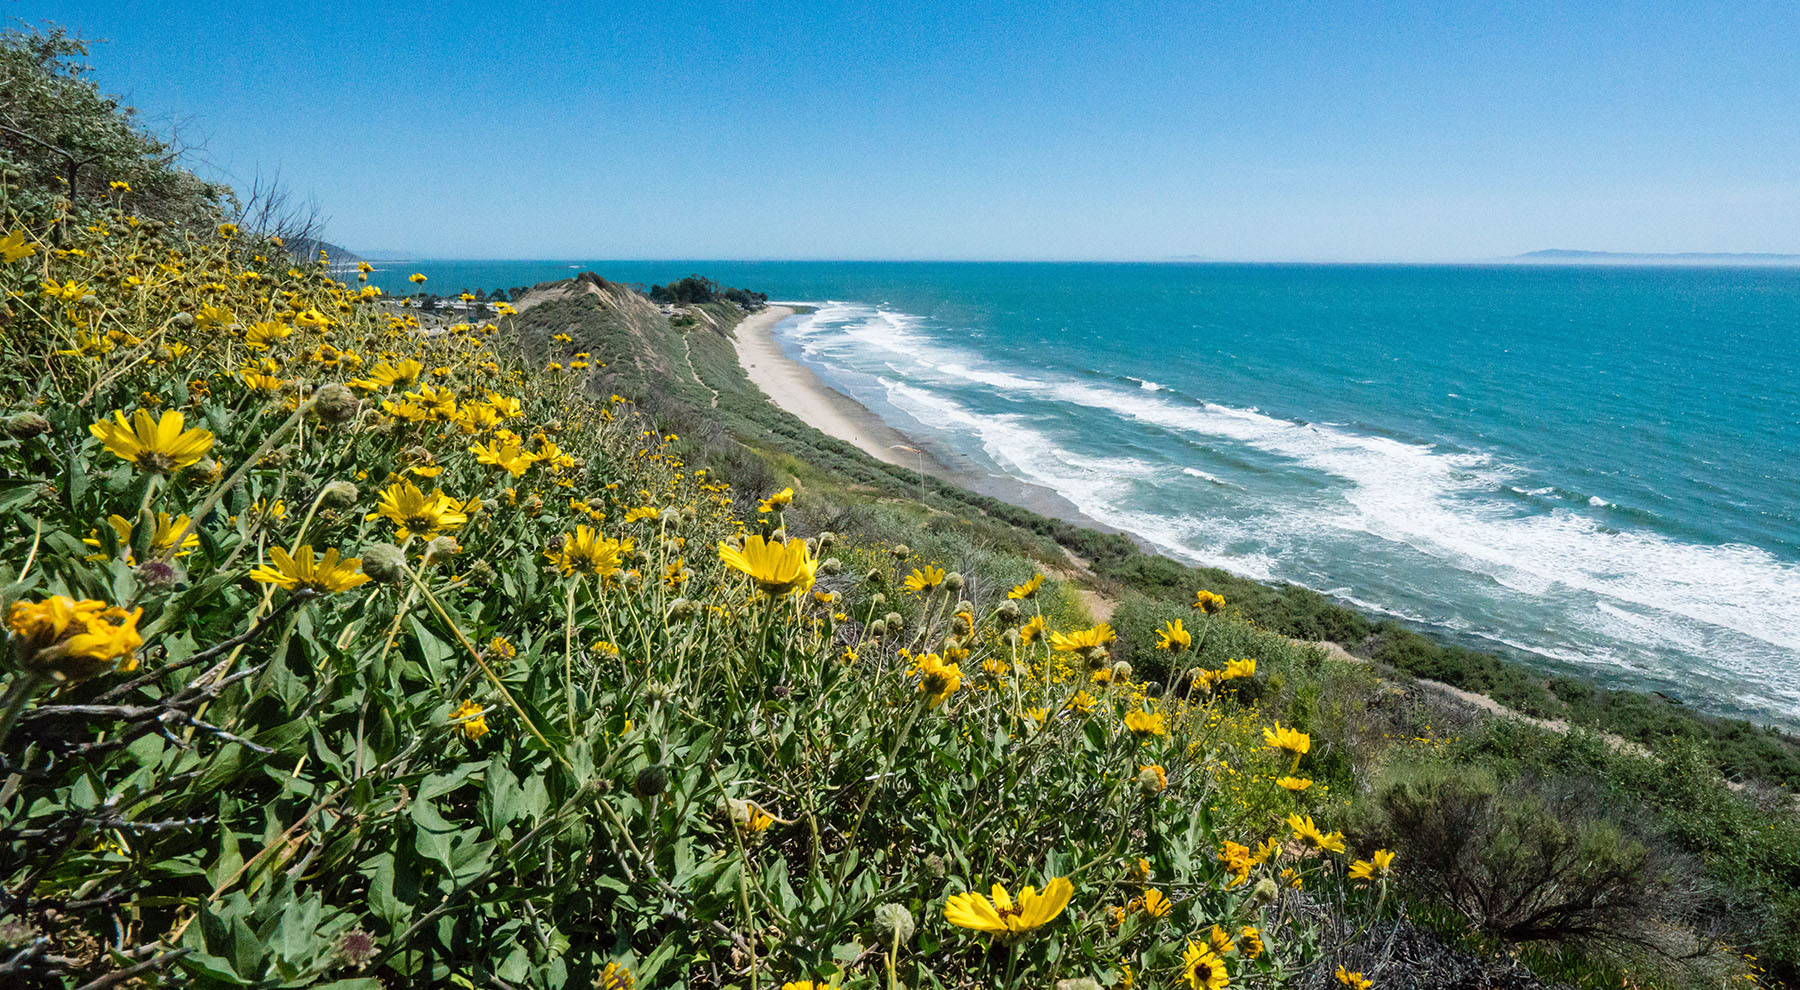 Carpinteria Bluffs III Awarded $144K CREF Grant